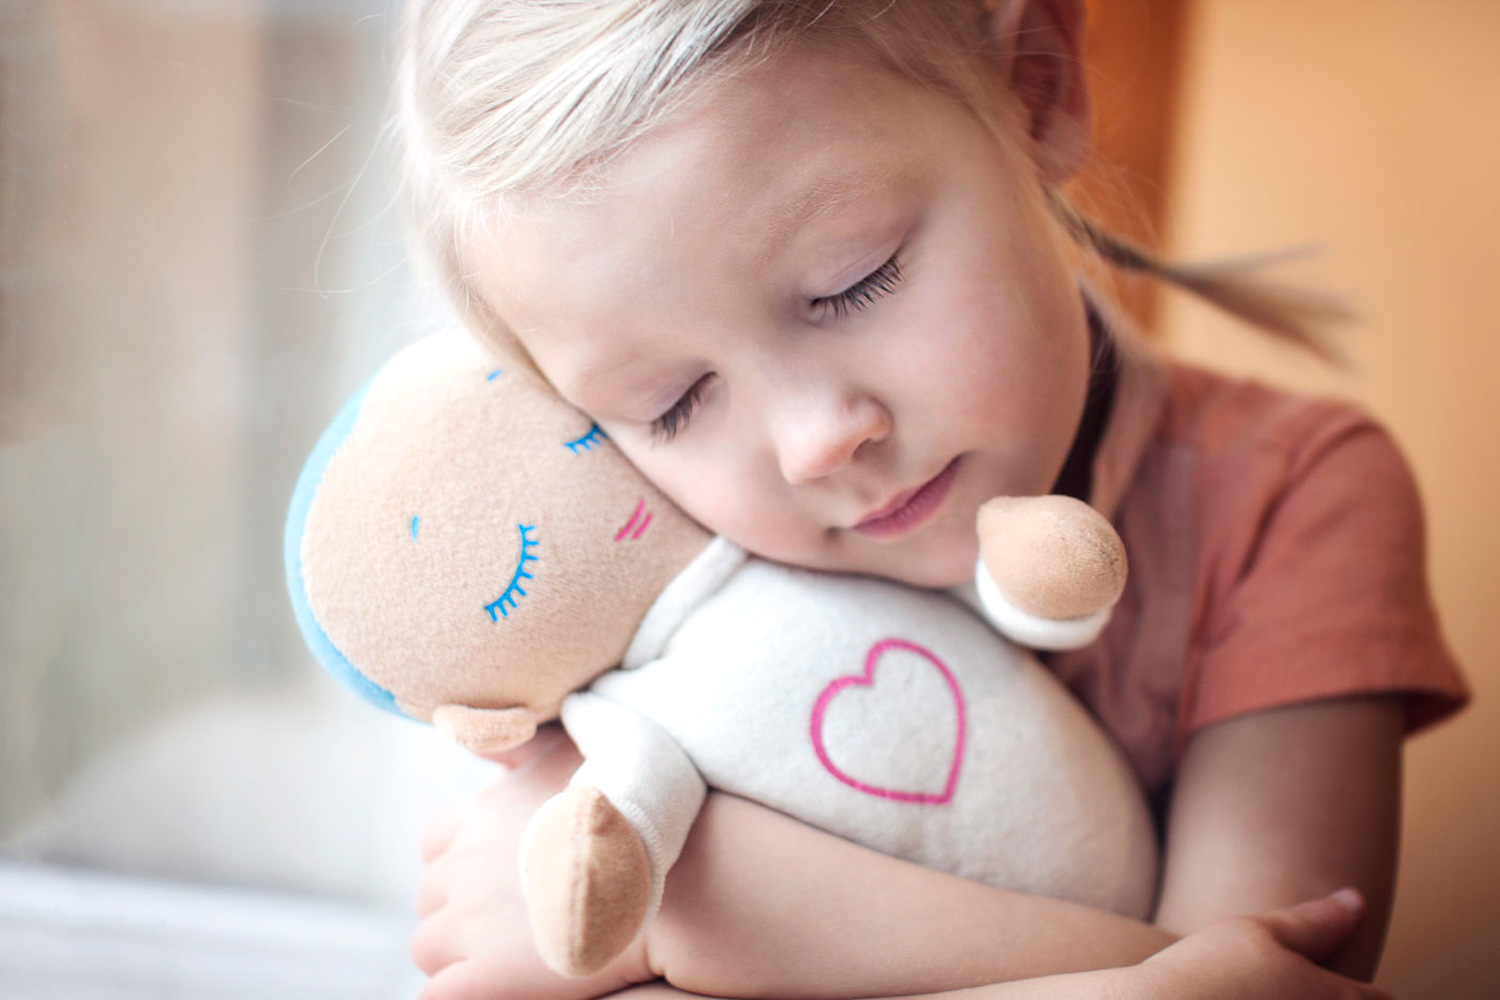 The Lulla Doll is a great option for kids who are suffering through childhood anxiety